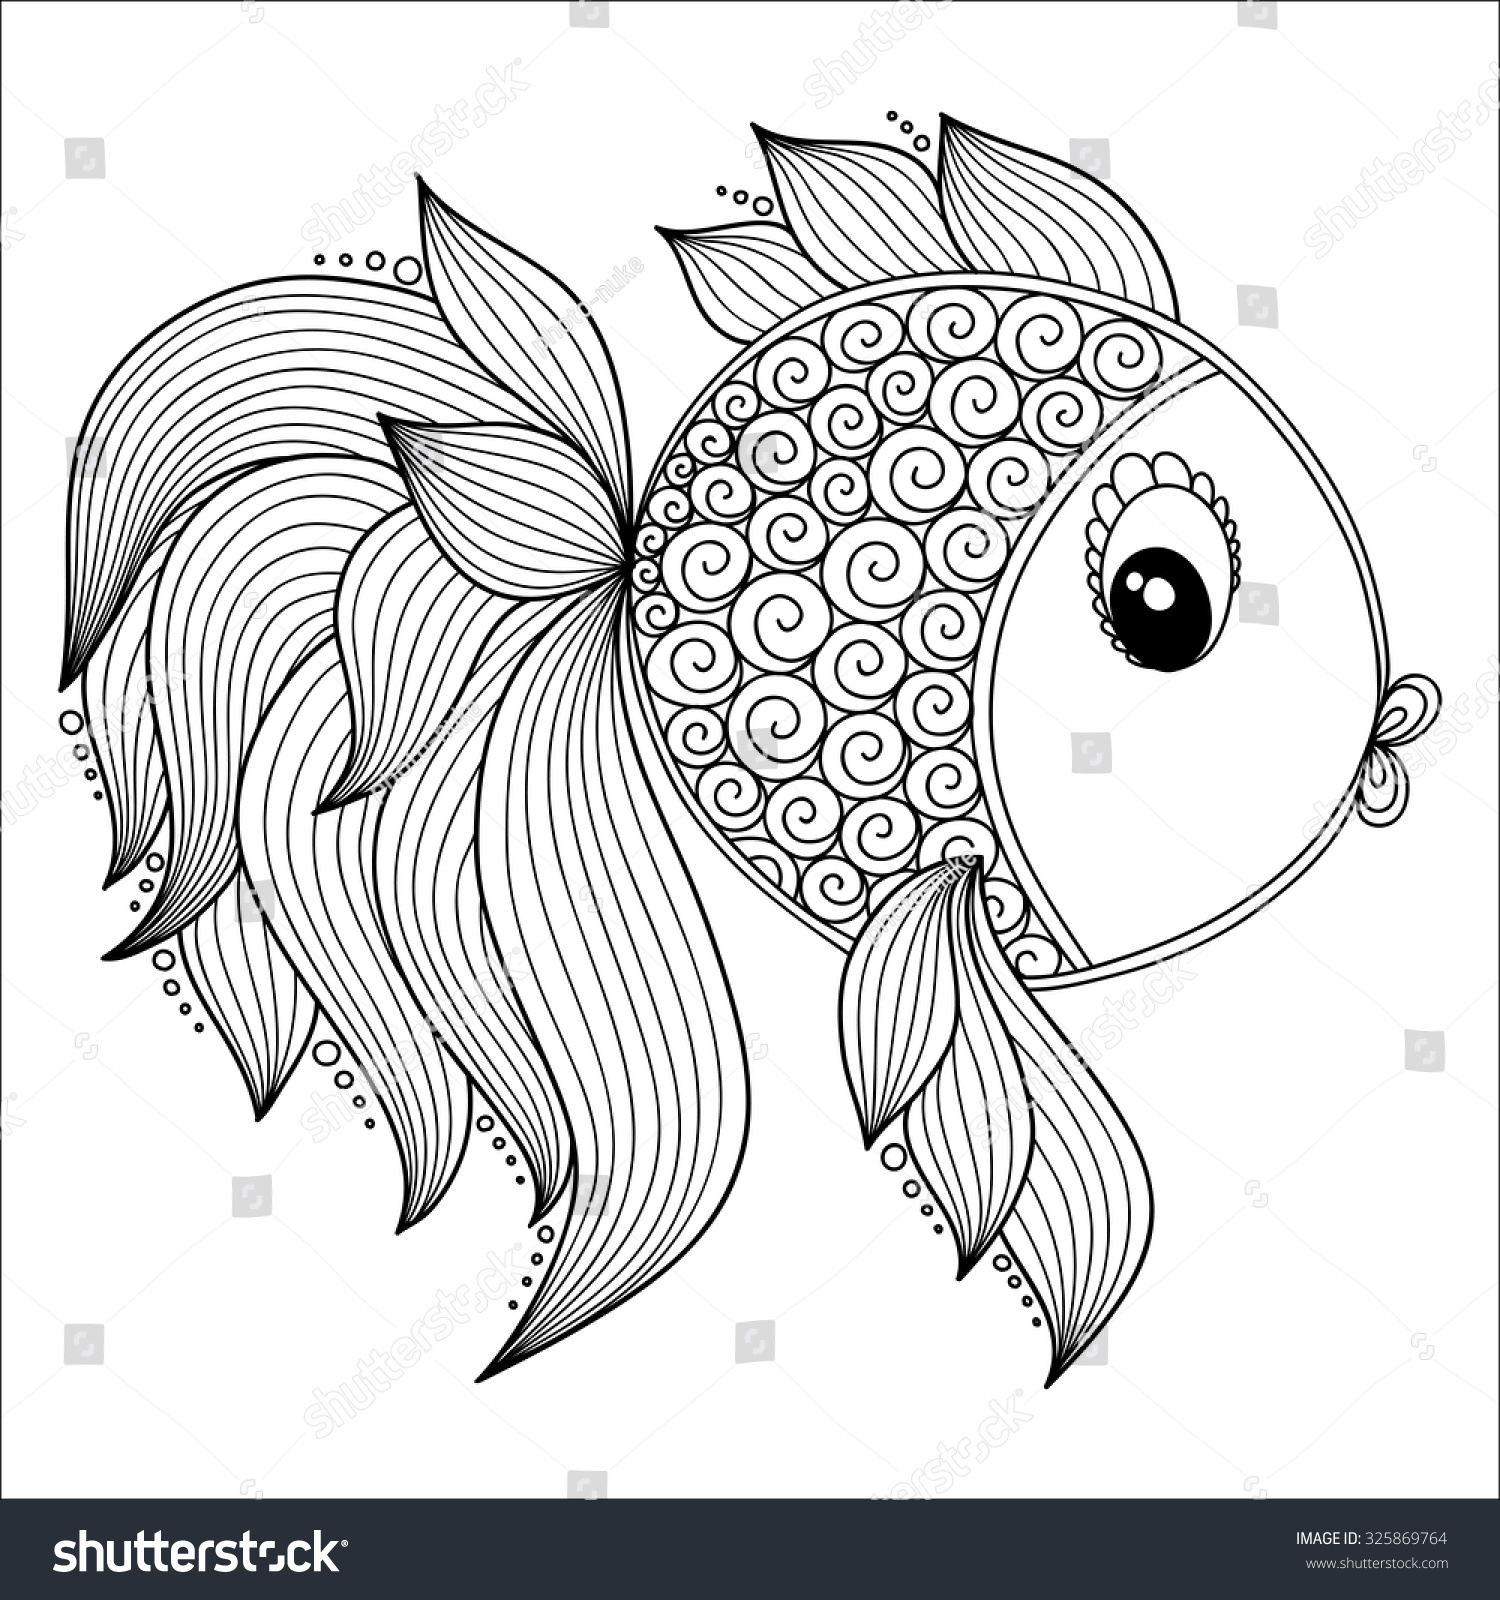 pattern coloring book coloring book pages stock vector 325869764